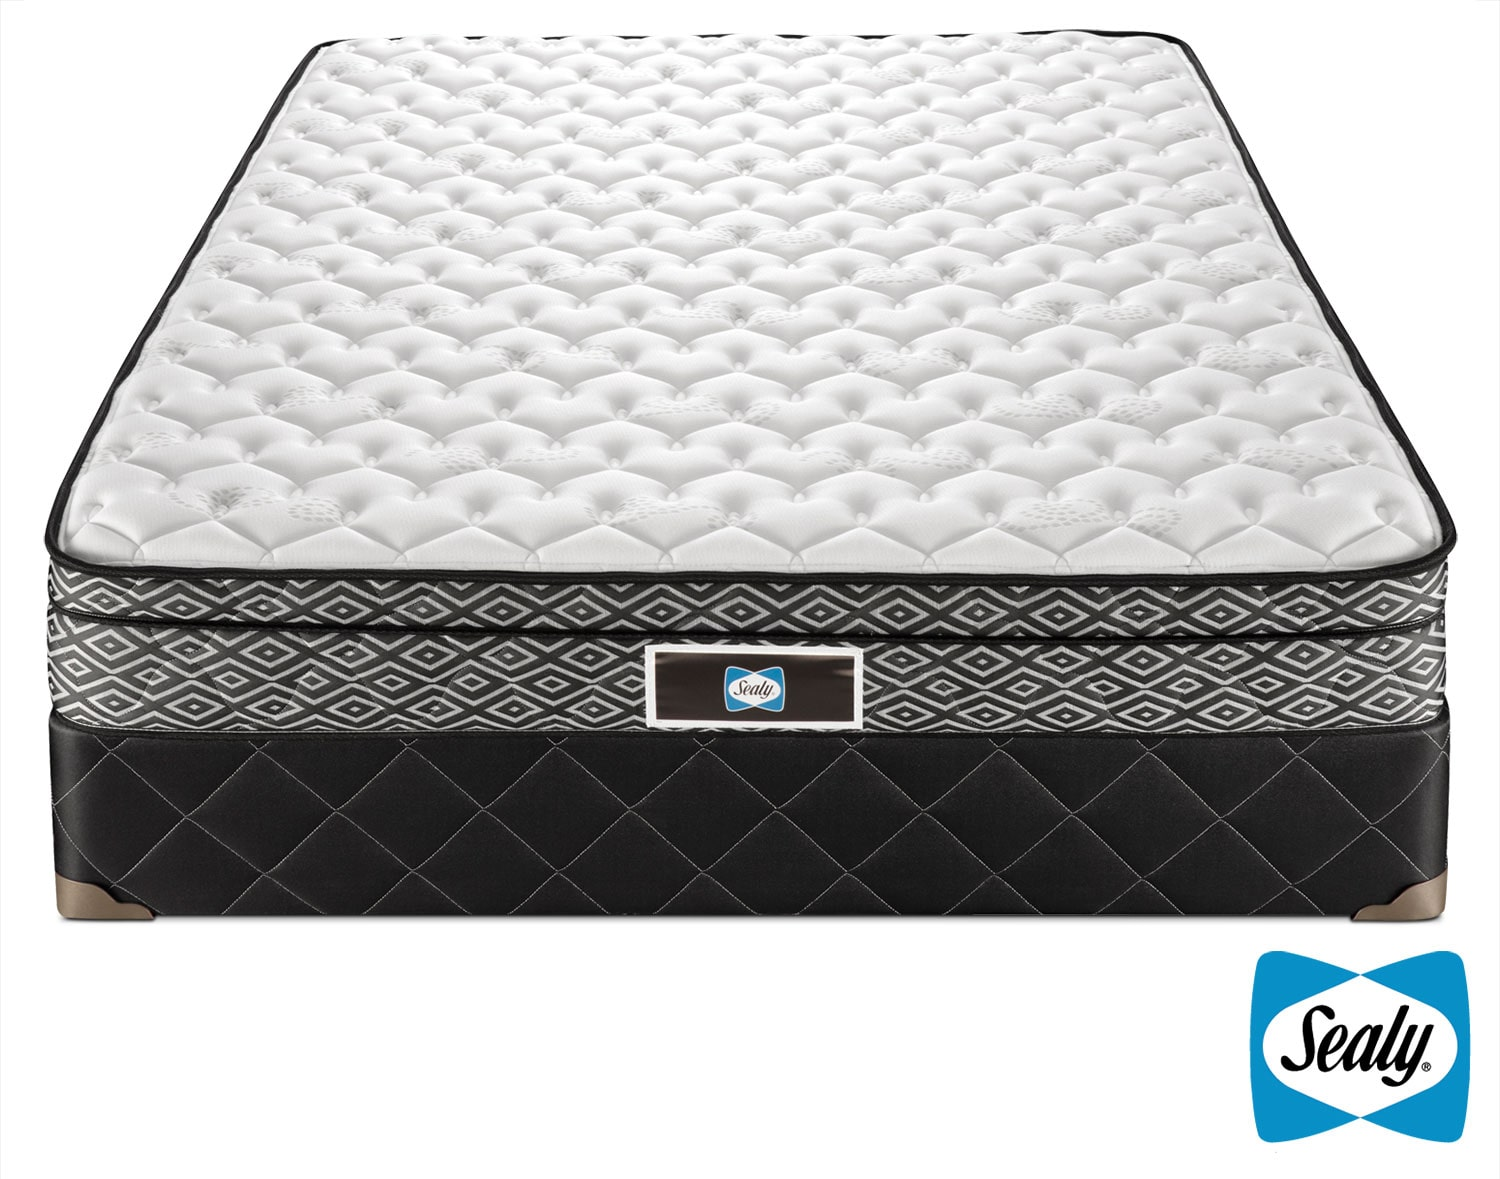 Mattresses and Bedding - Sealy Tale Twin Mattress/Boxspring Set